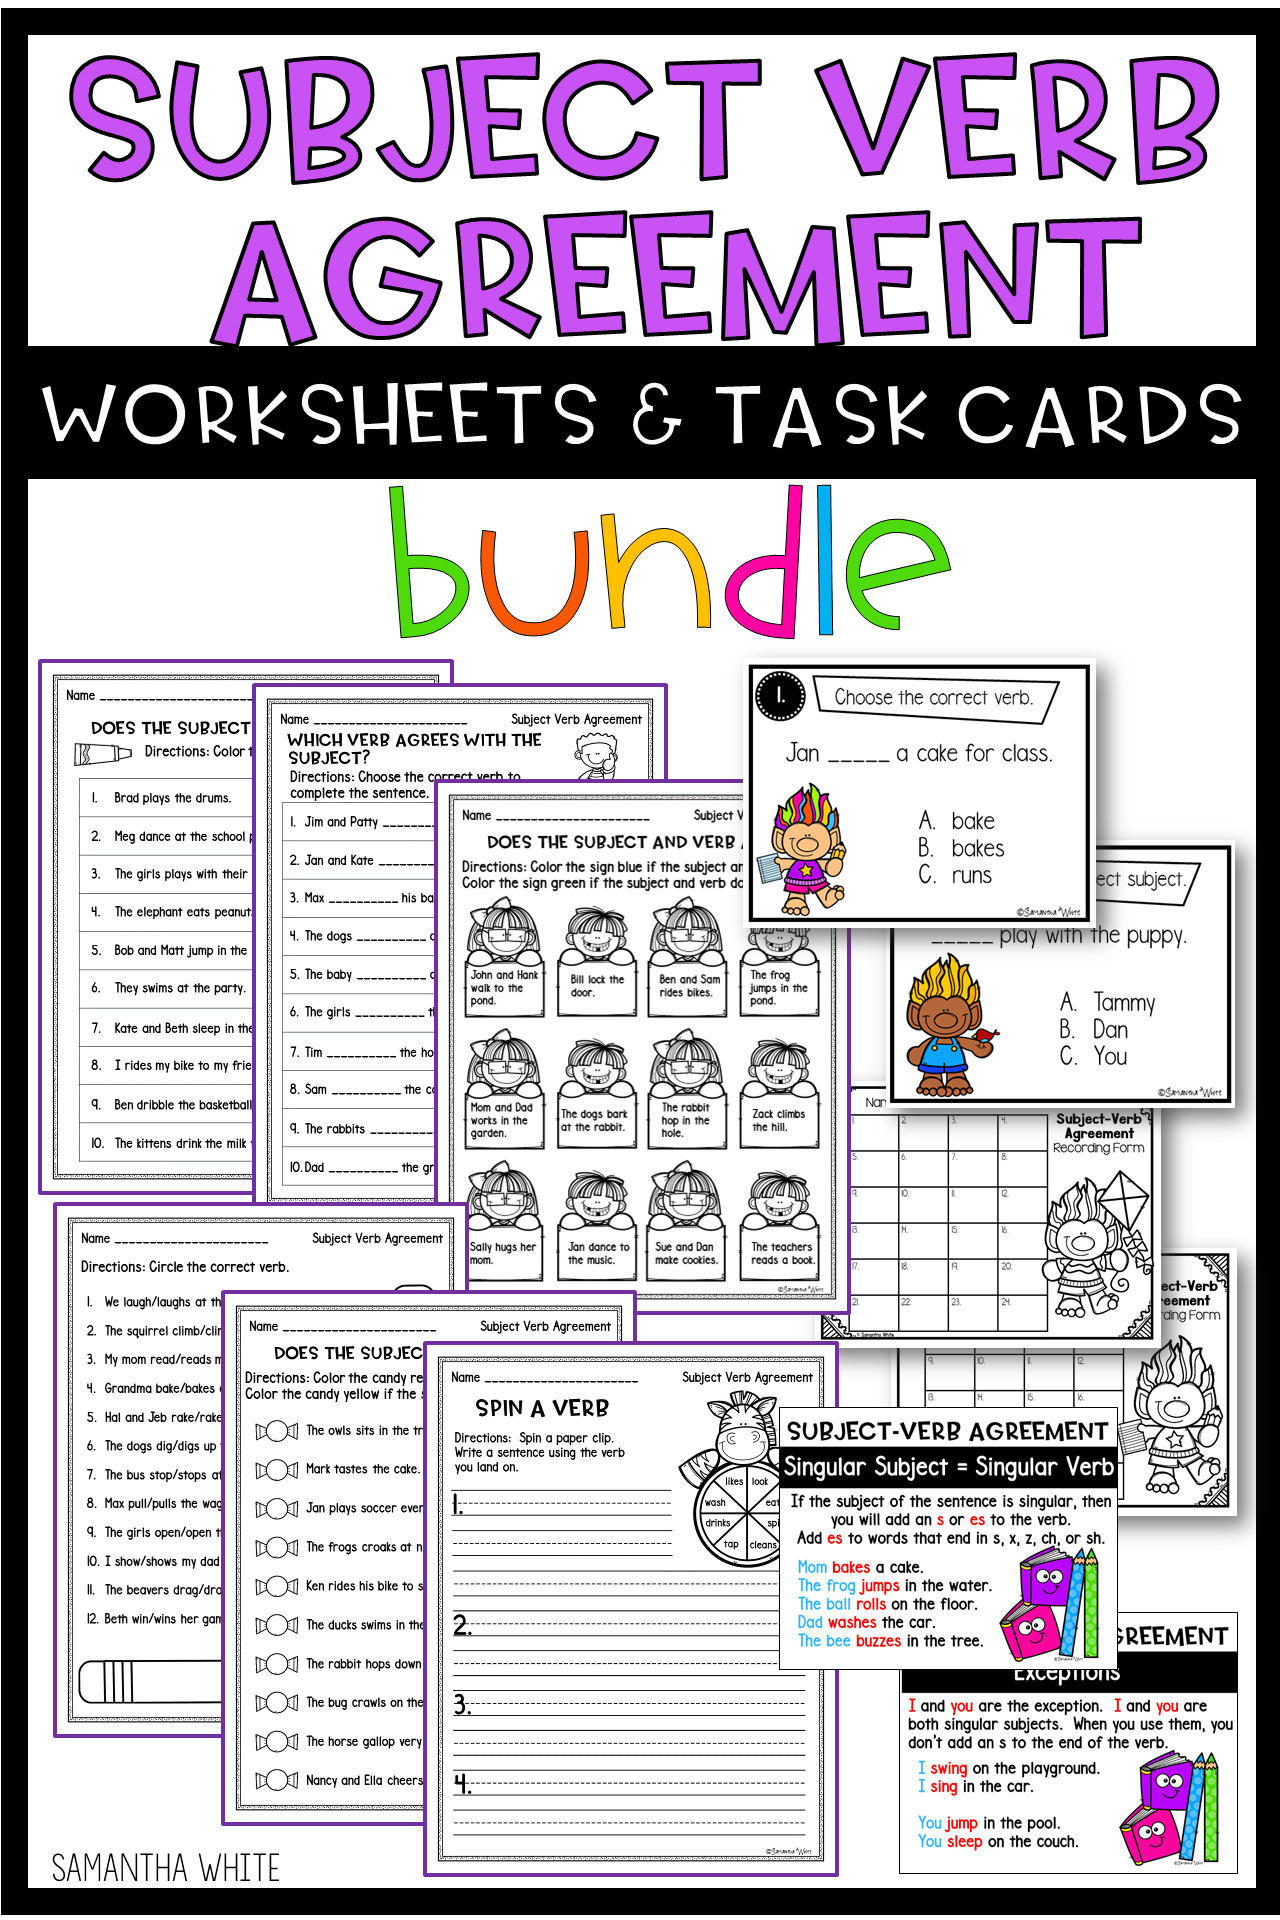 Subject Verb Agreement Worksheets And Task Cards Bundle